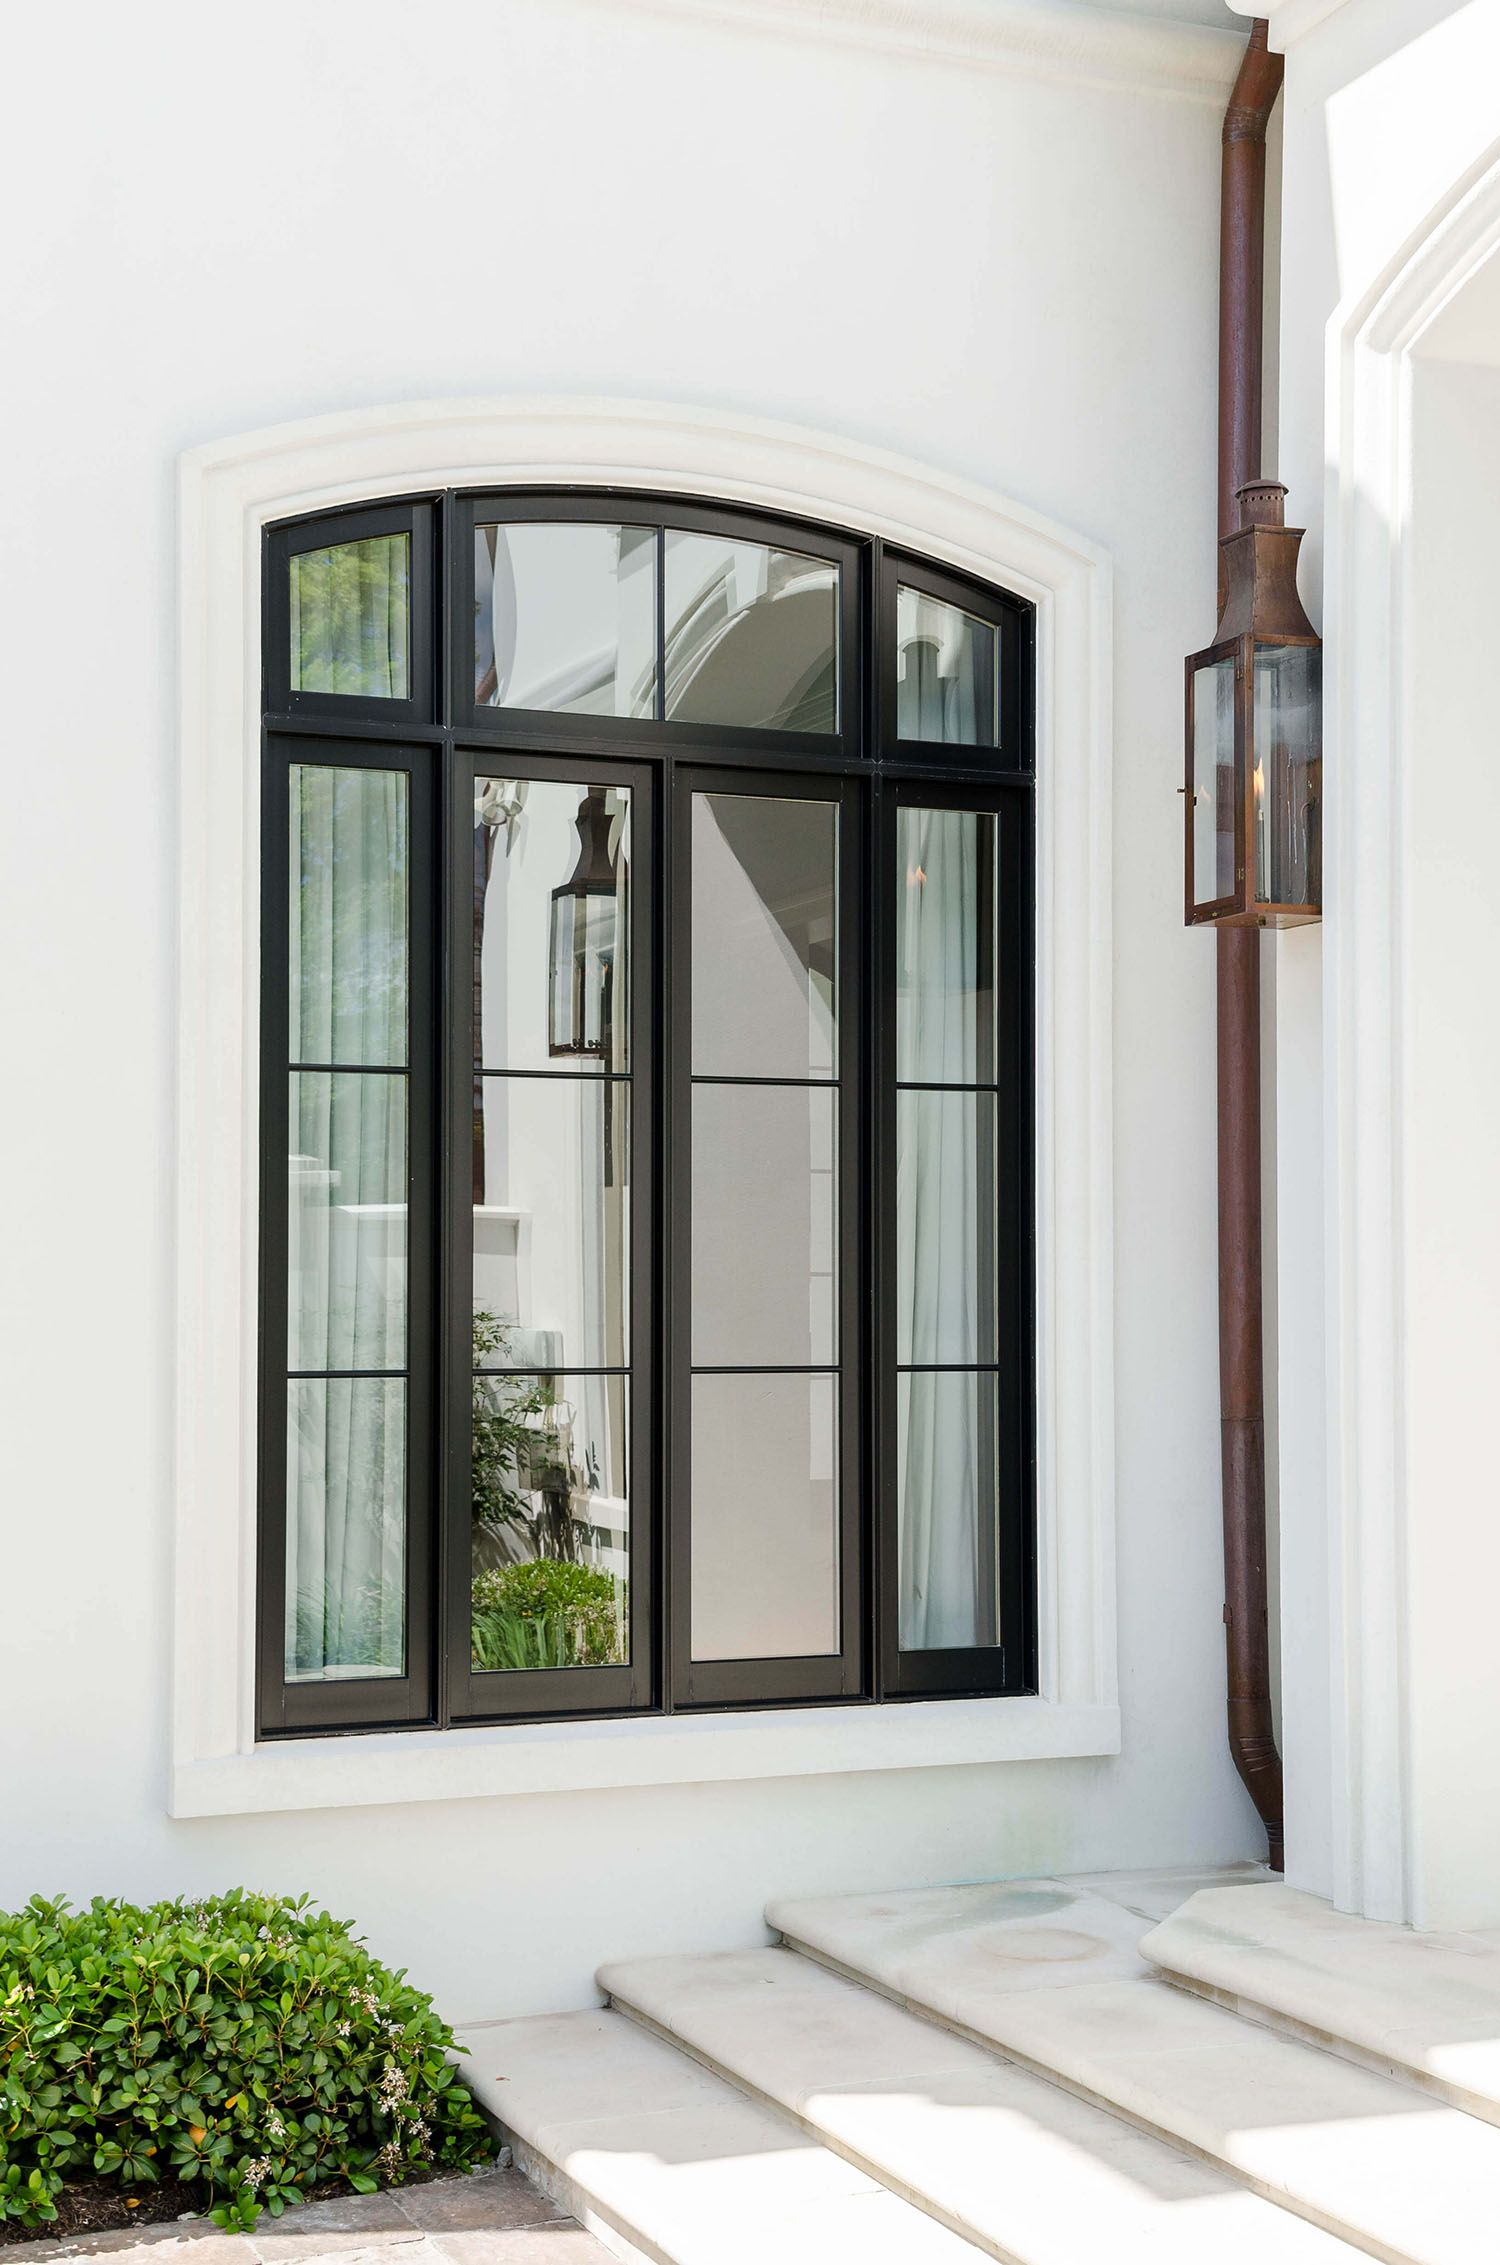 Marvin Clad windows | Windows | Pinterest | Window, Exterior and Doors